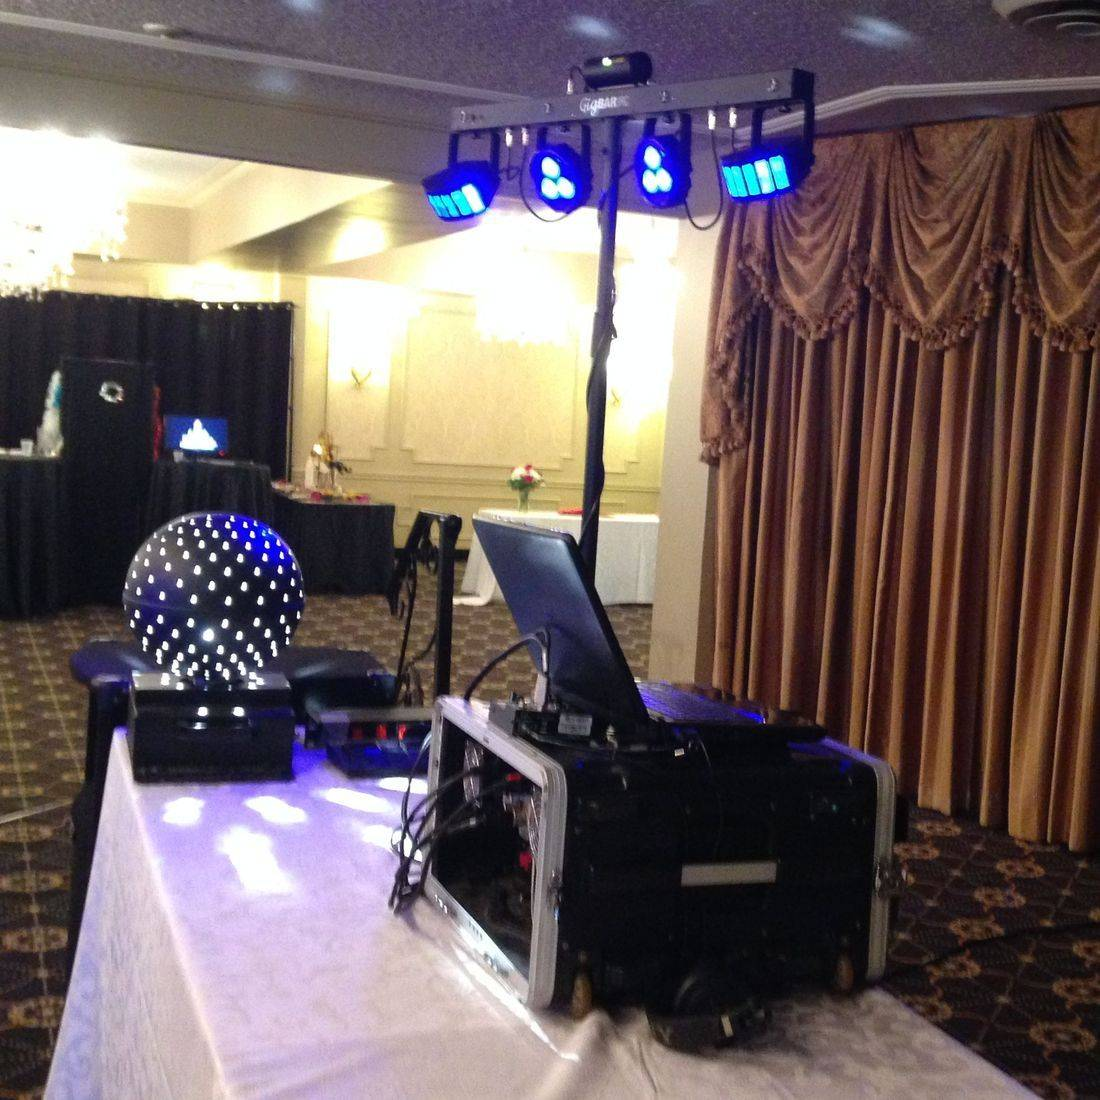 Mr. Productions DJ Service at a grade 8 graduation at Liuna Gardens in Stoney Creek.